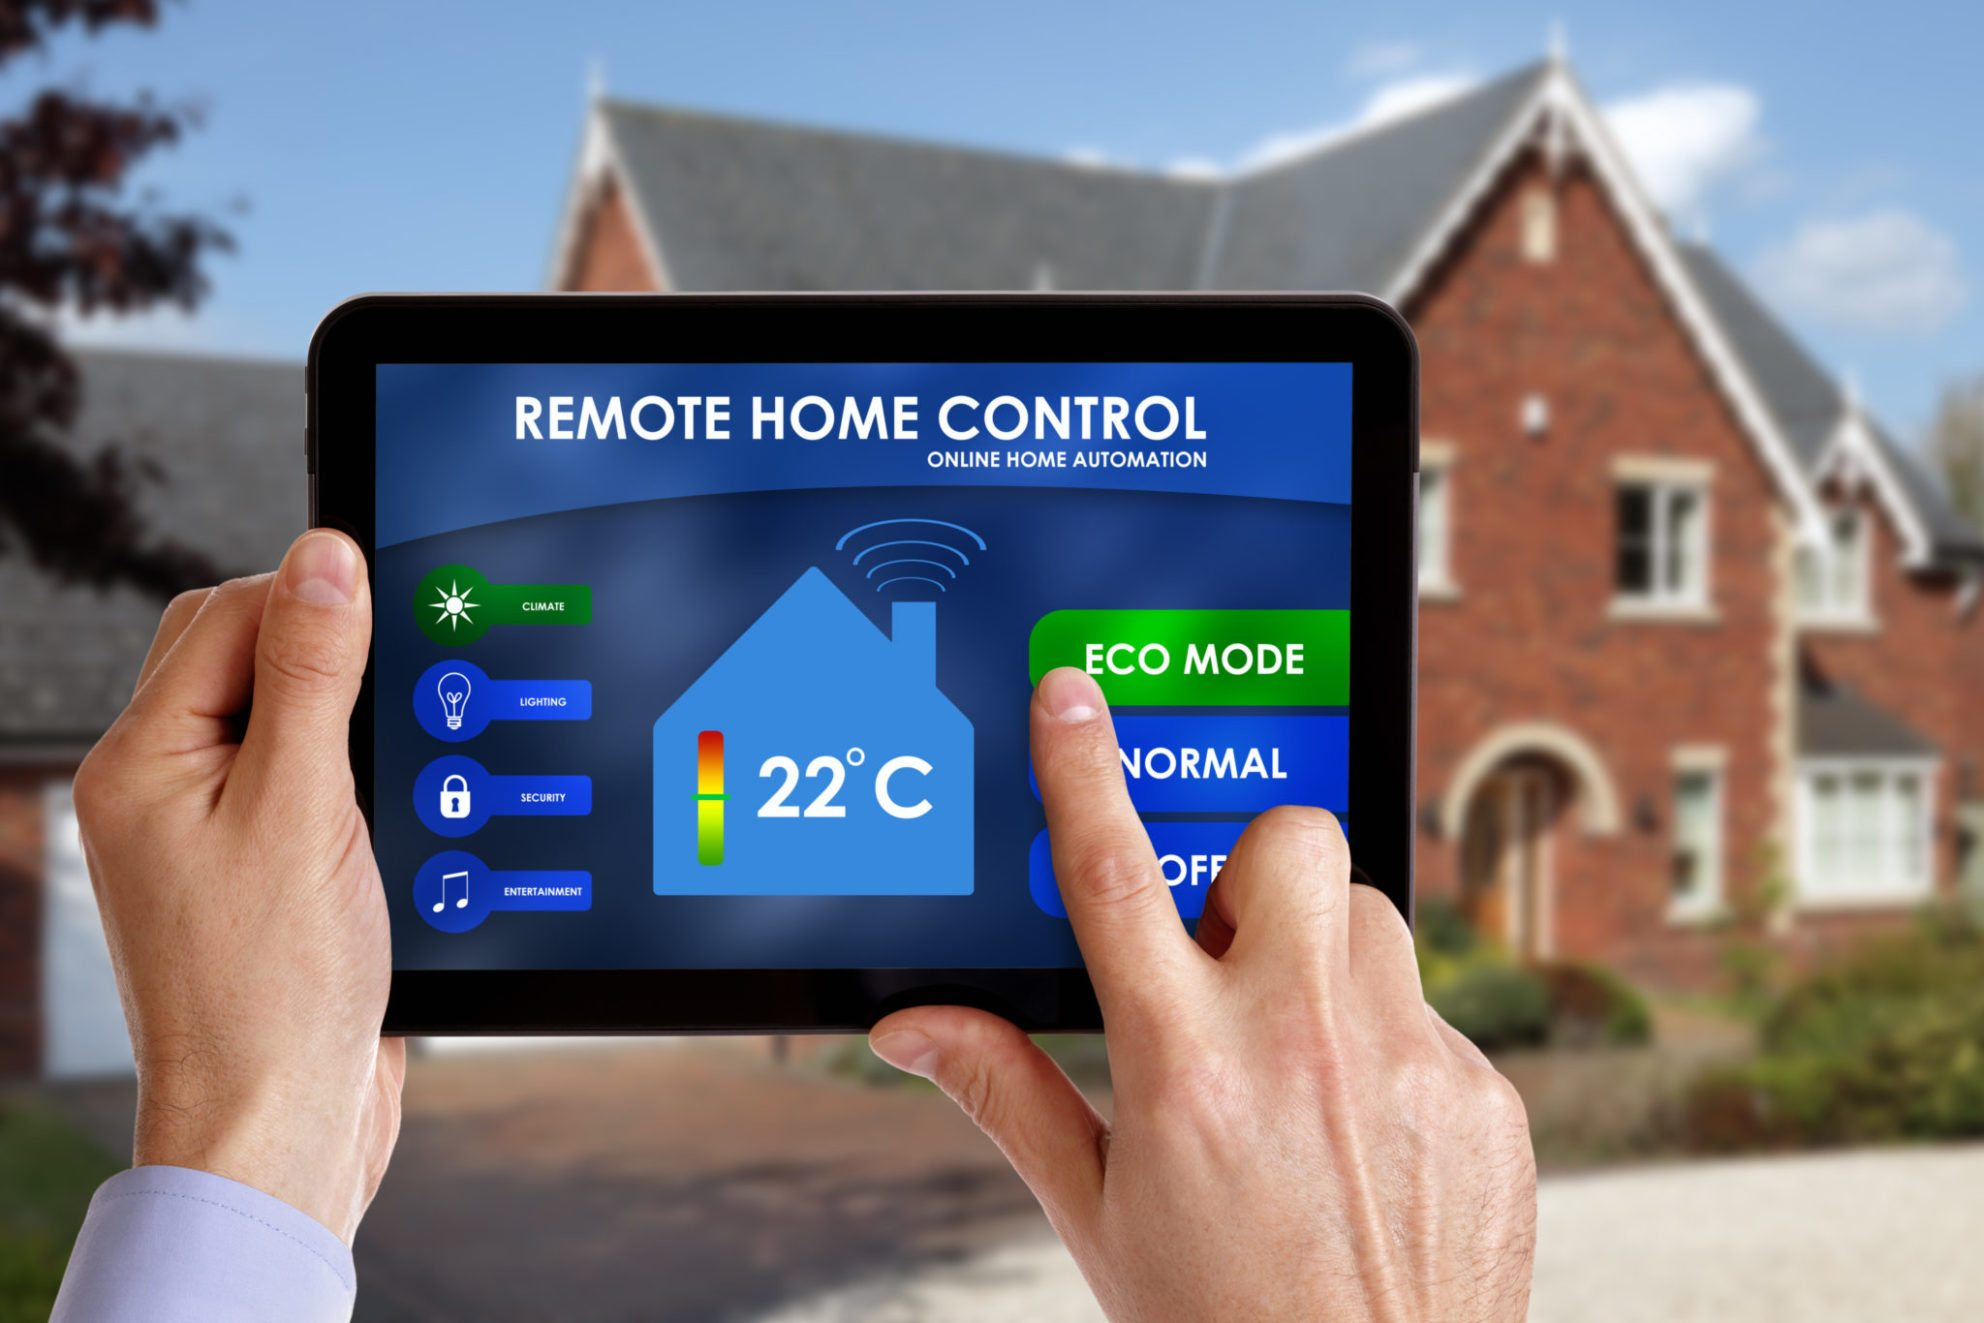 How to show -- and sell -- a smart home